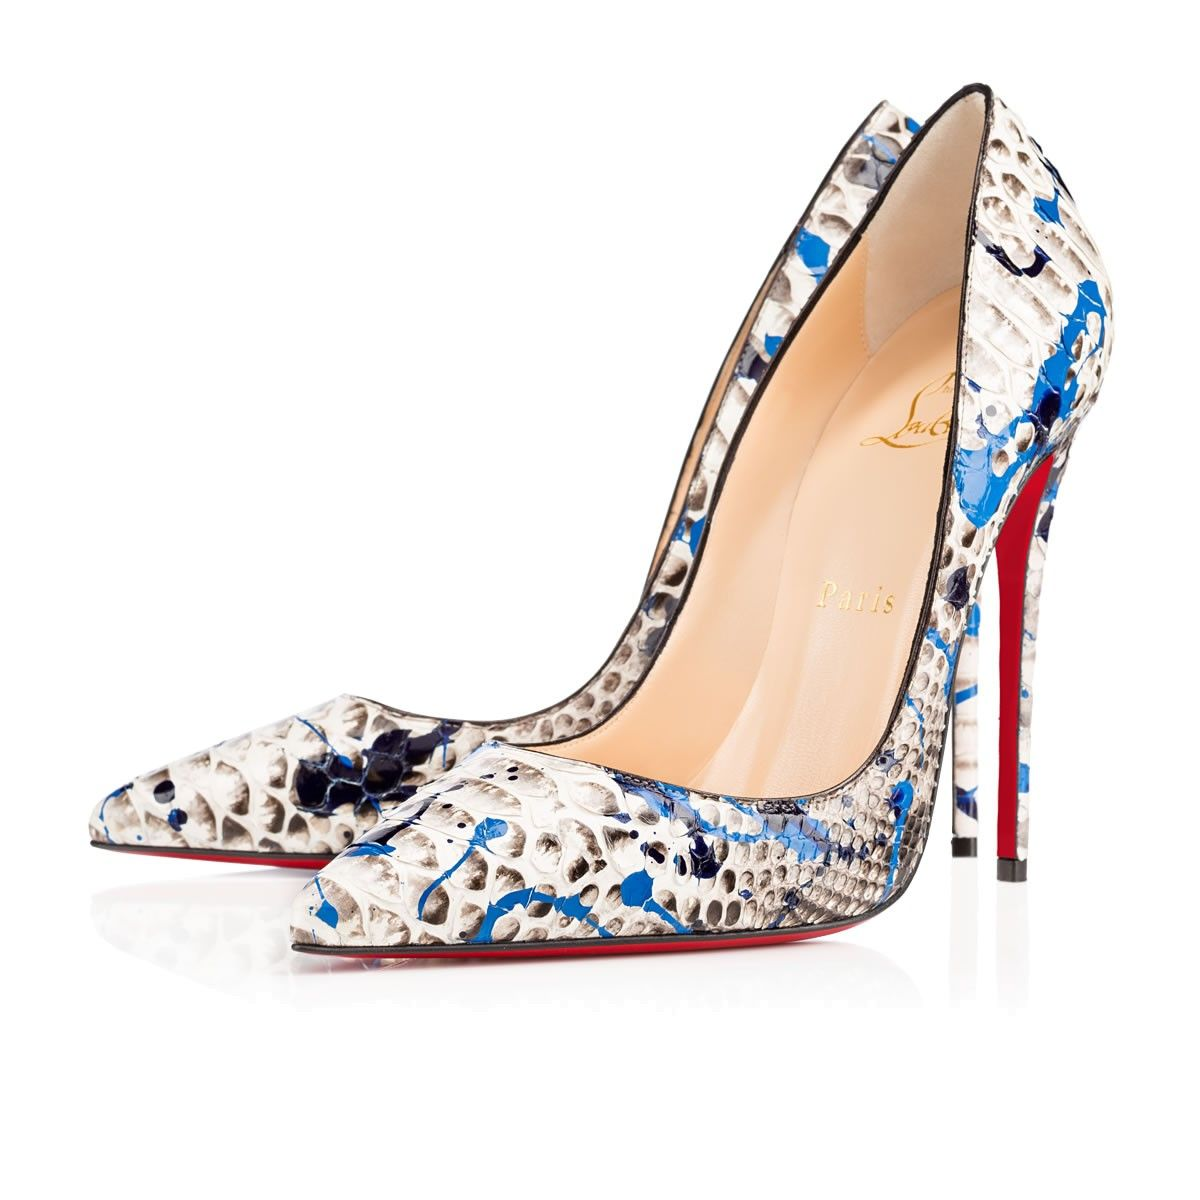 Christian Louboutin Spring/Summer So Kate python vulcano pumps